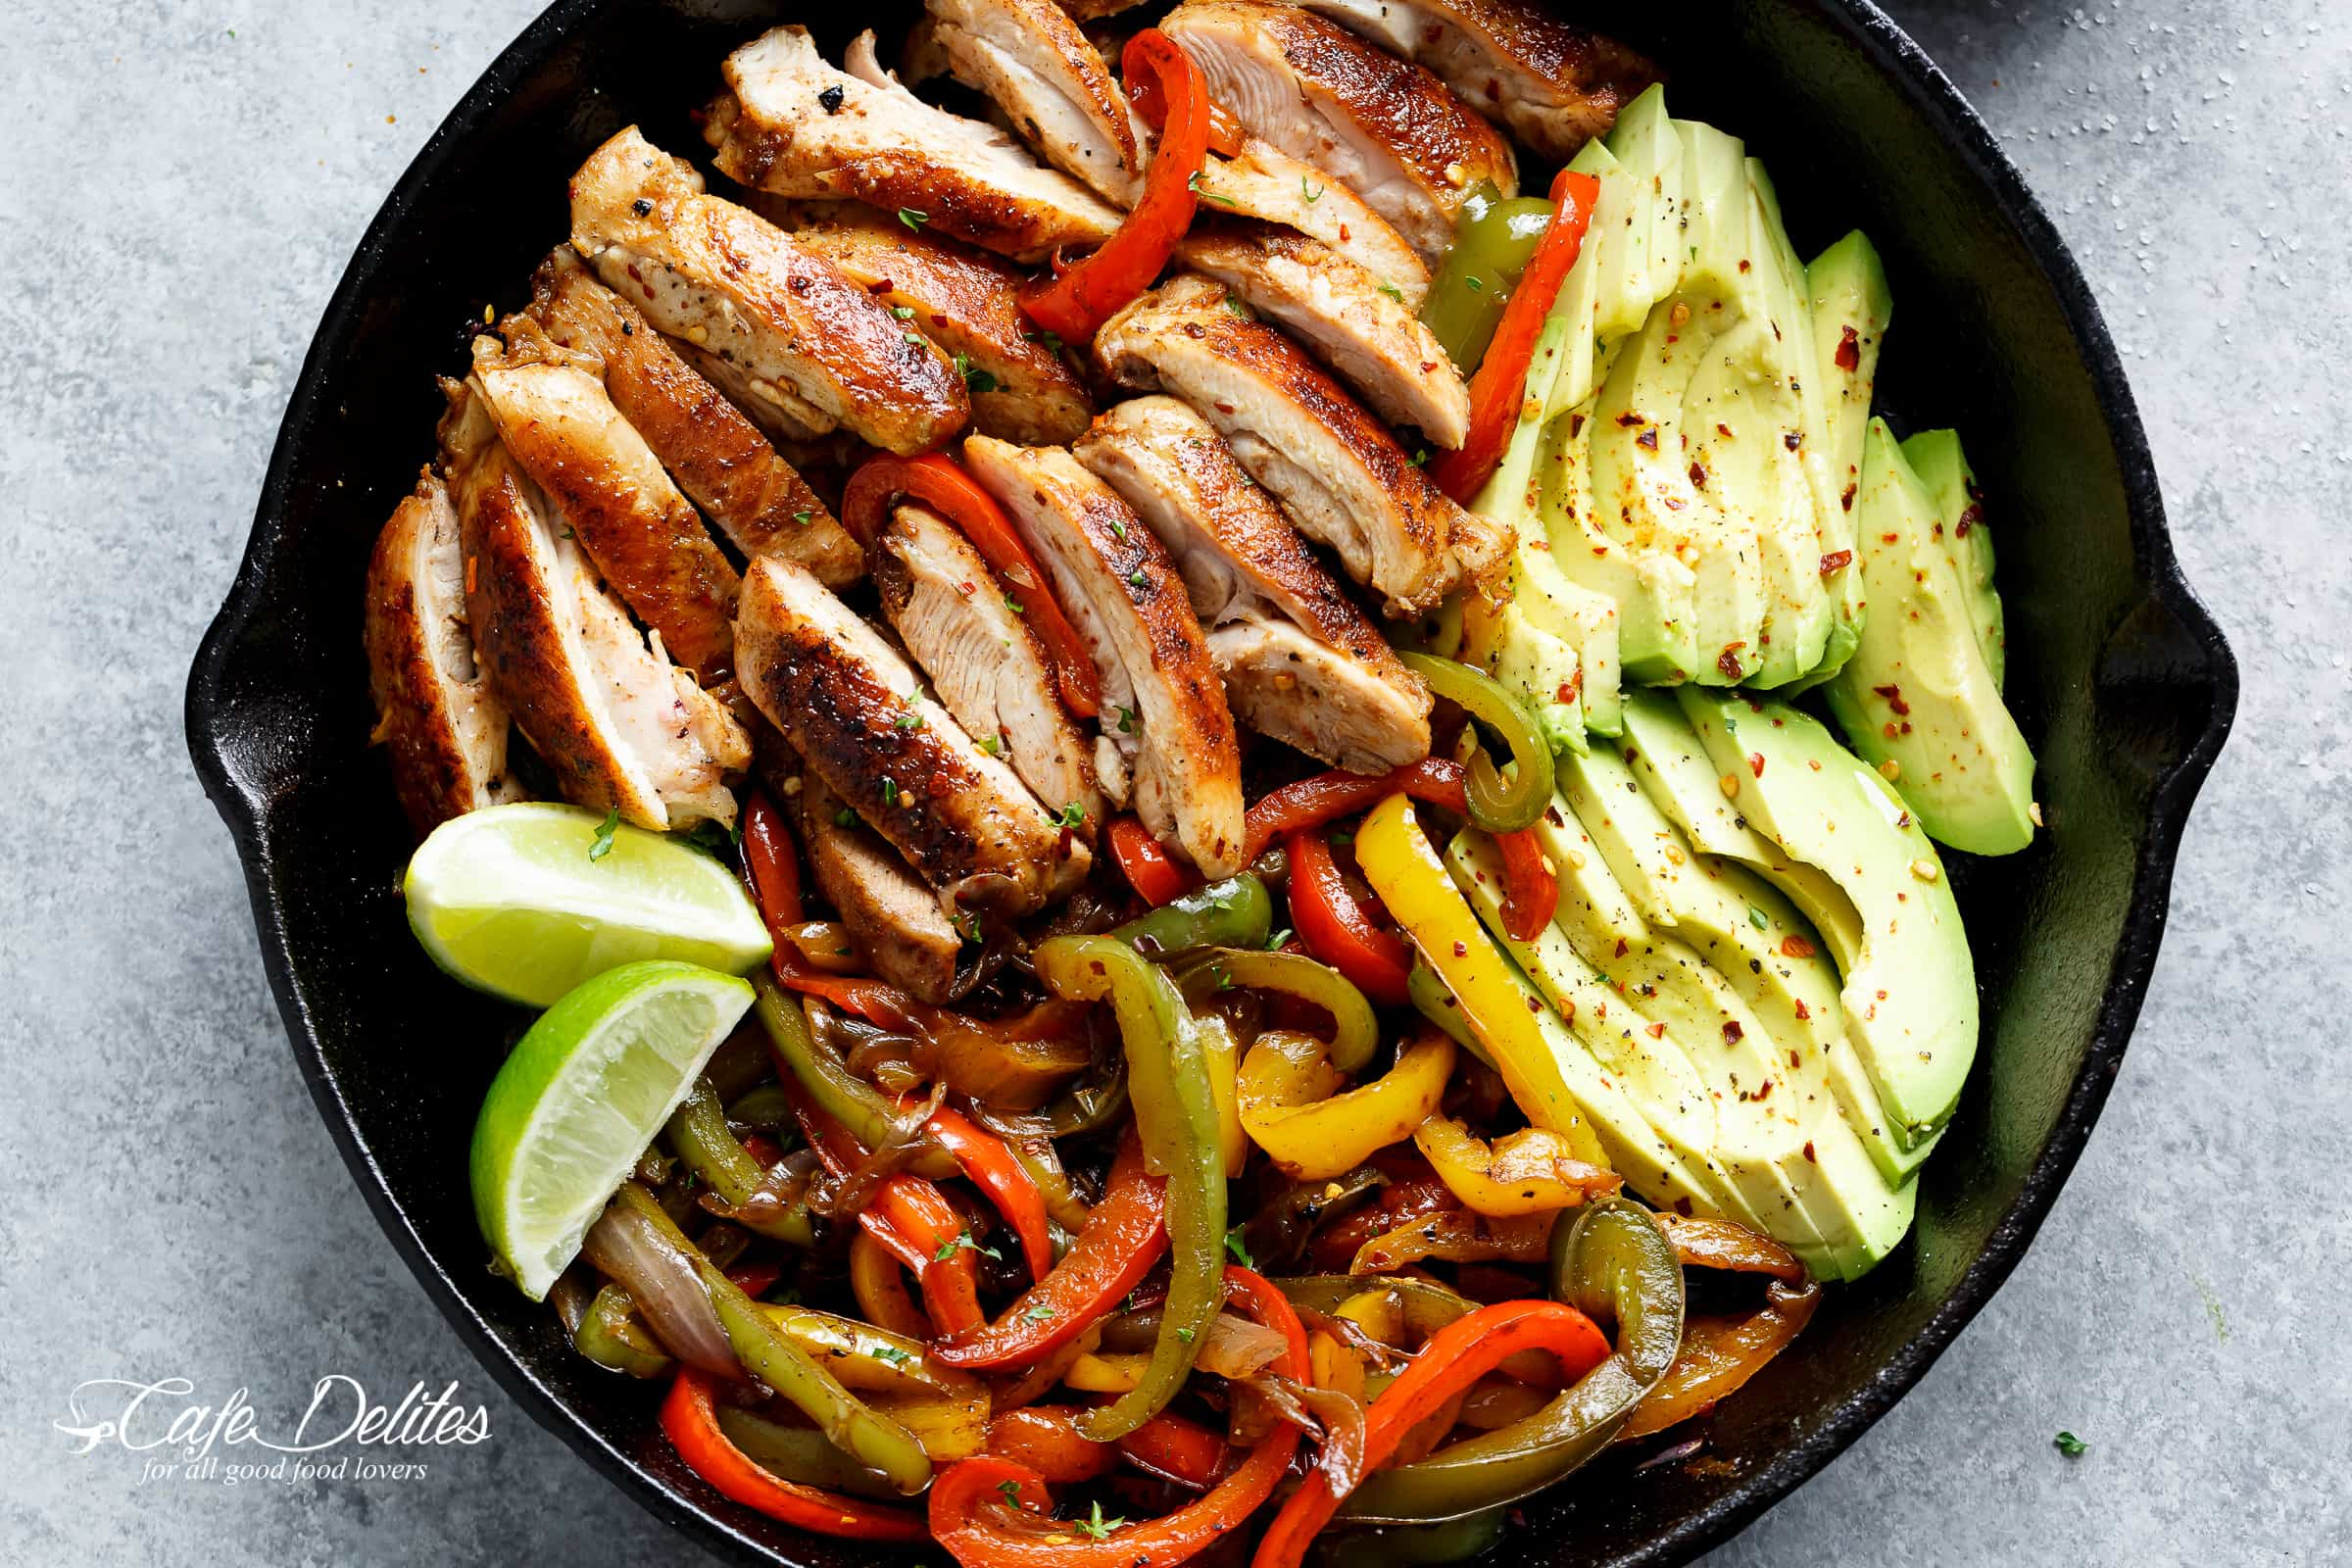 Best Chicken Fajitas Cafe Delites